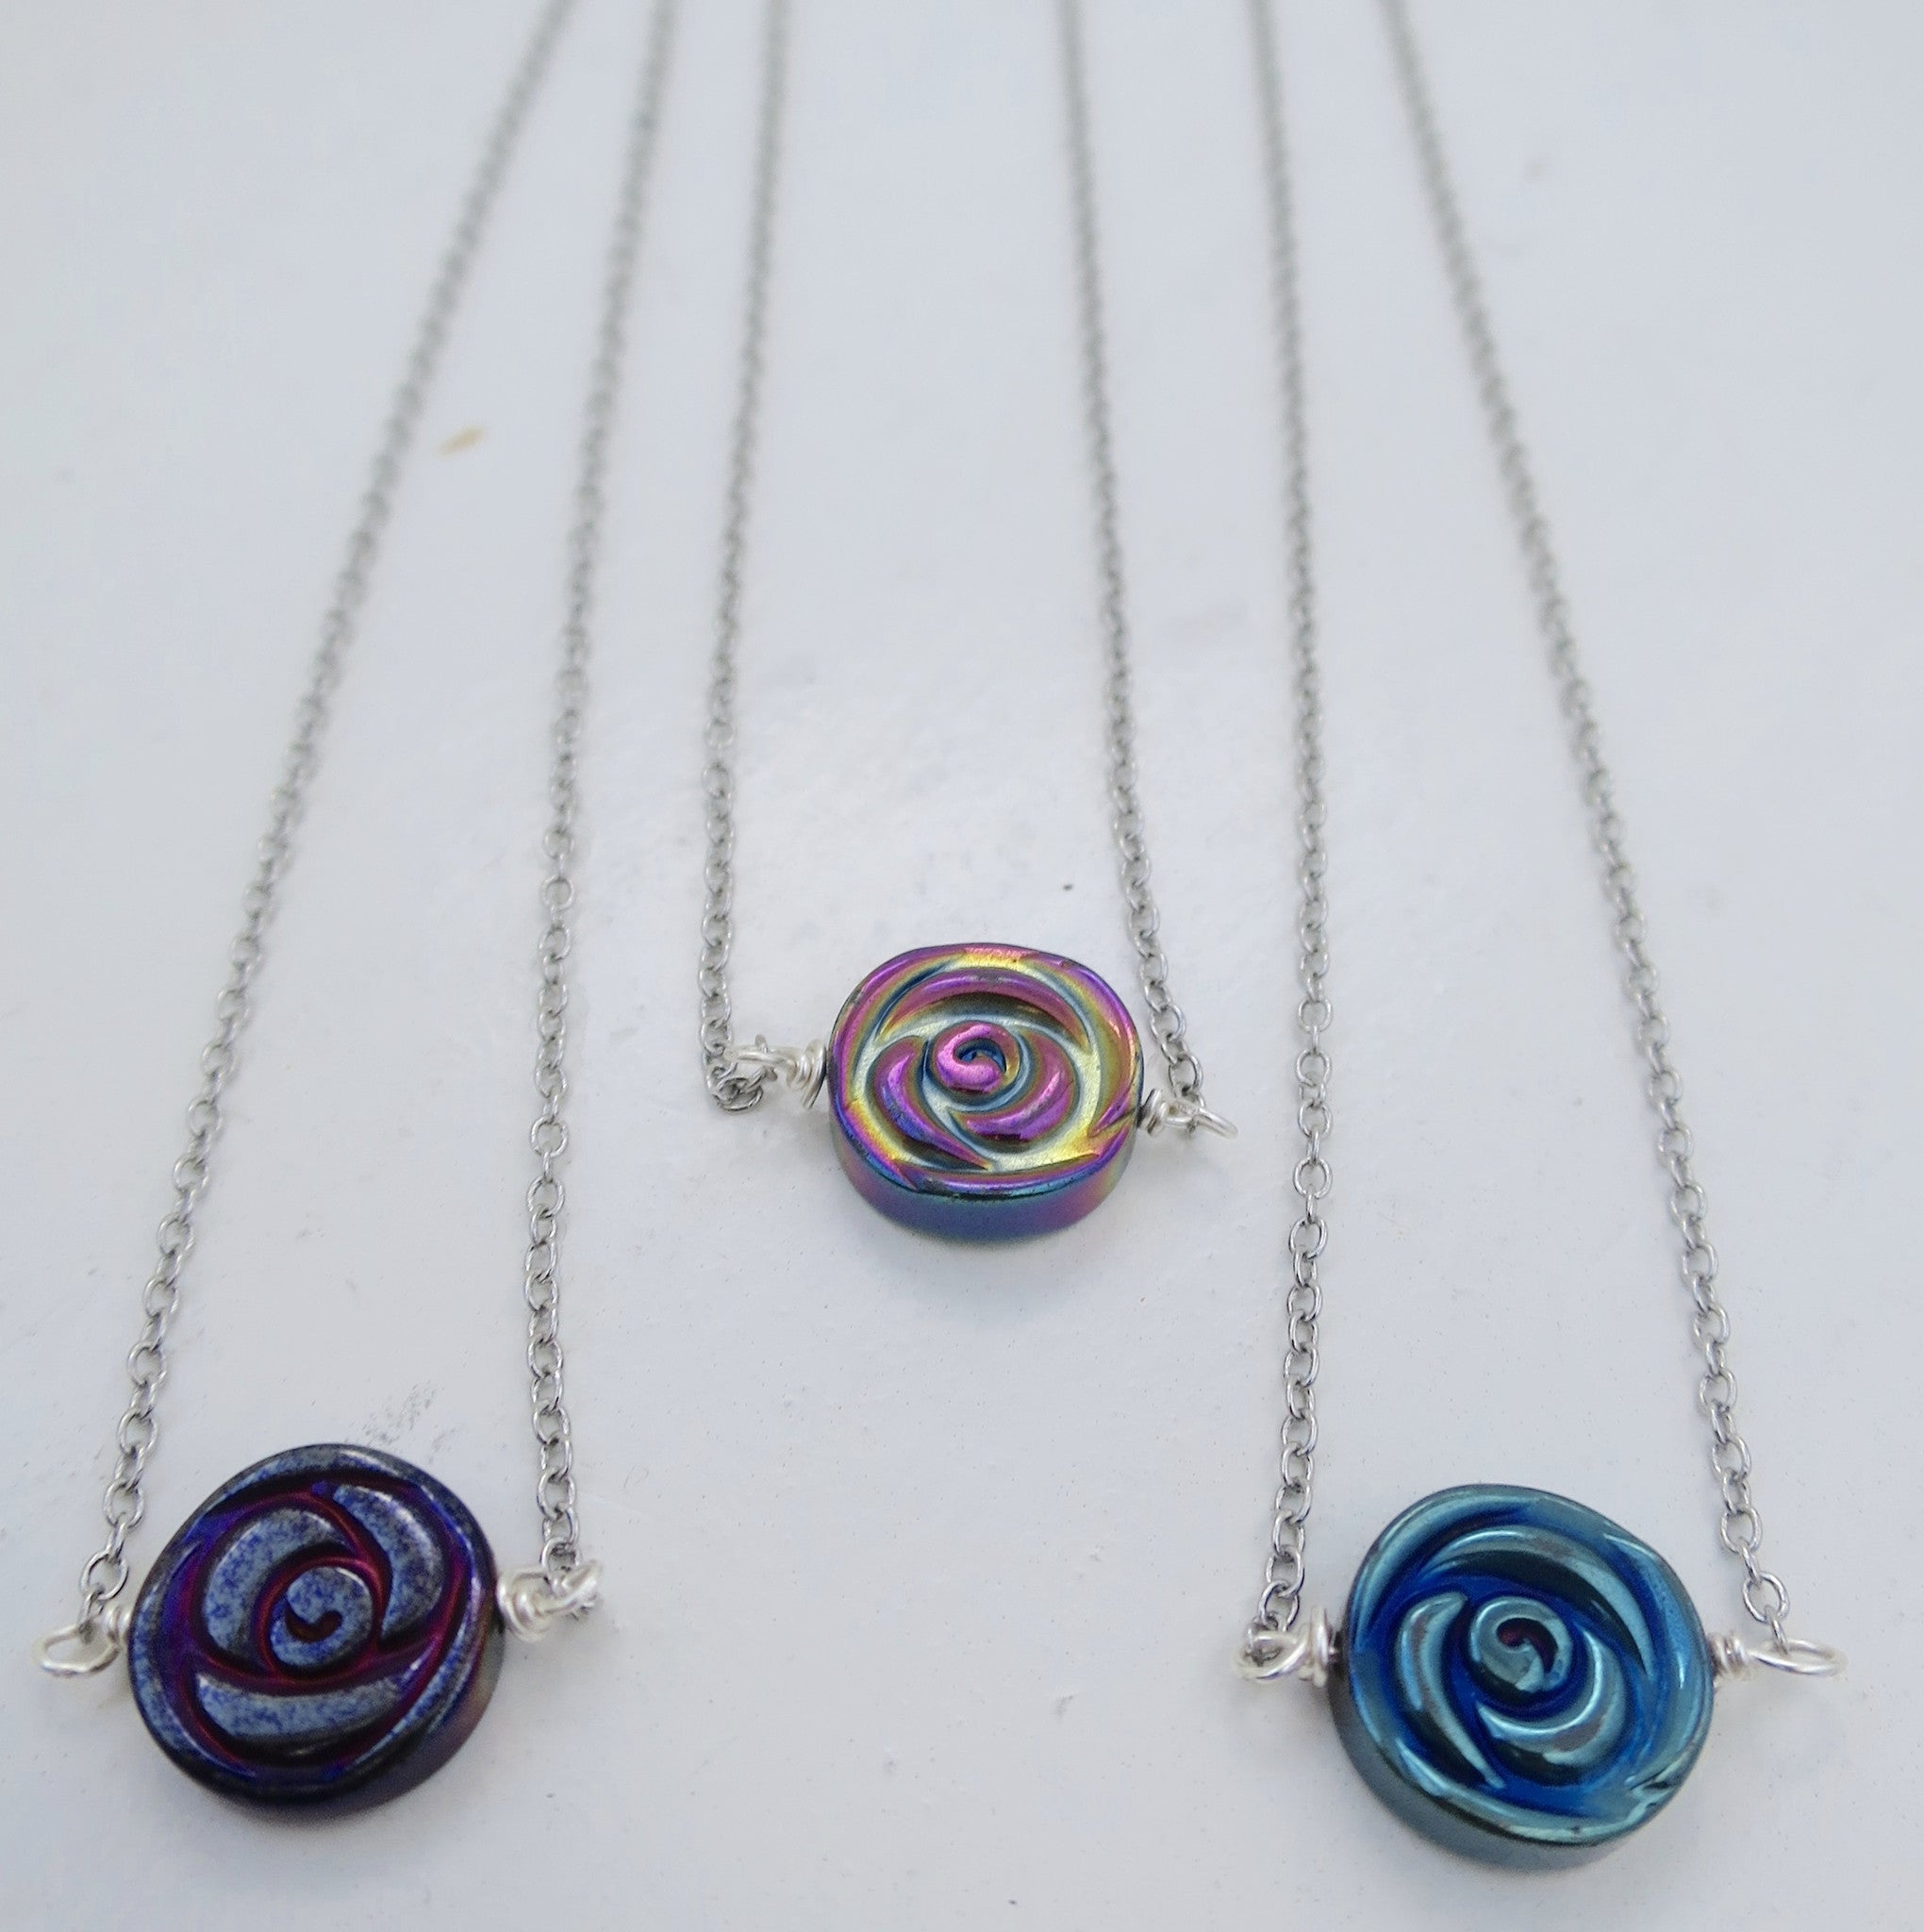 Hematite Rose  Necklace - Pretty Princess Style  - 4